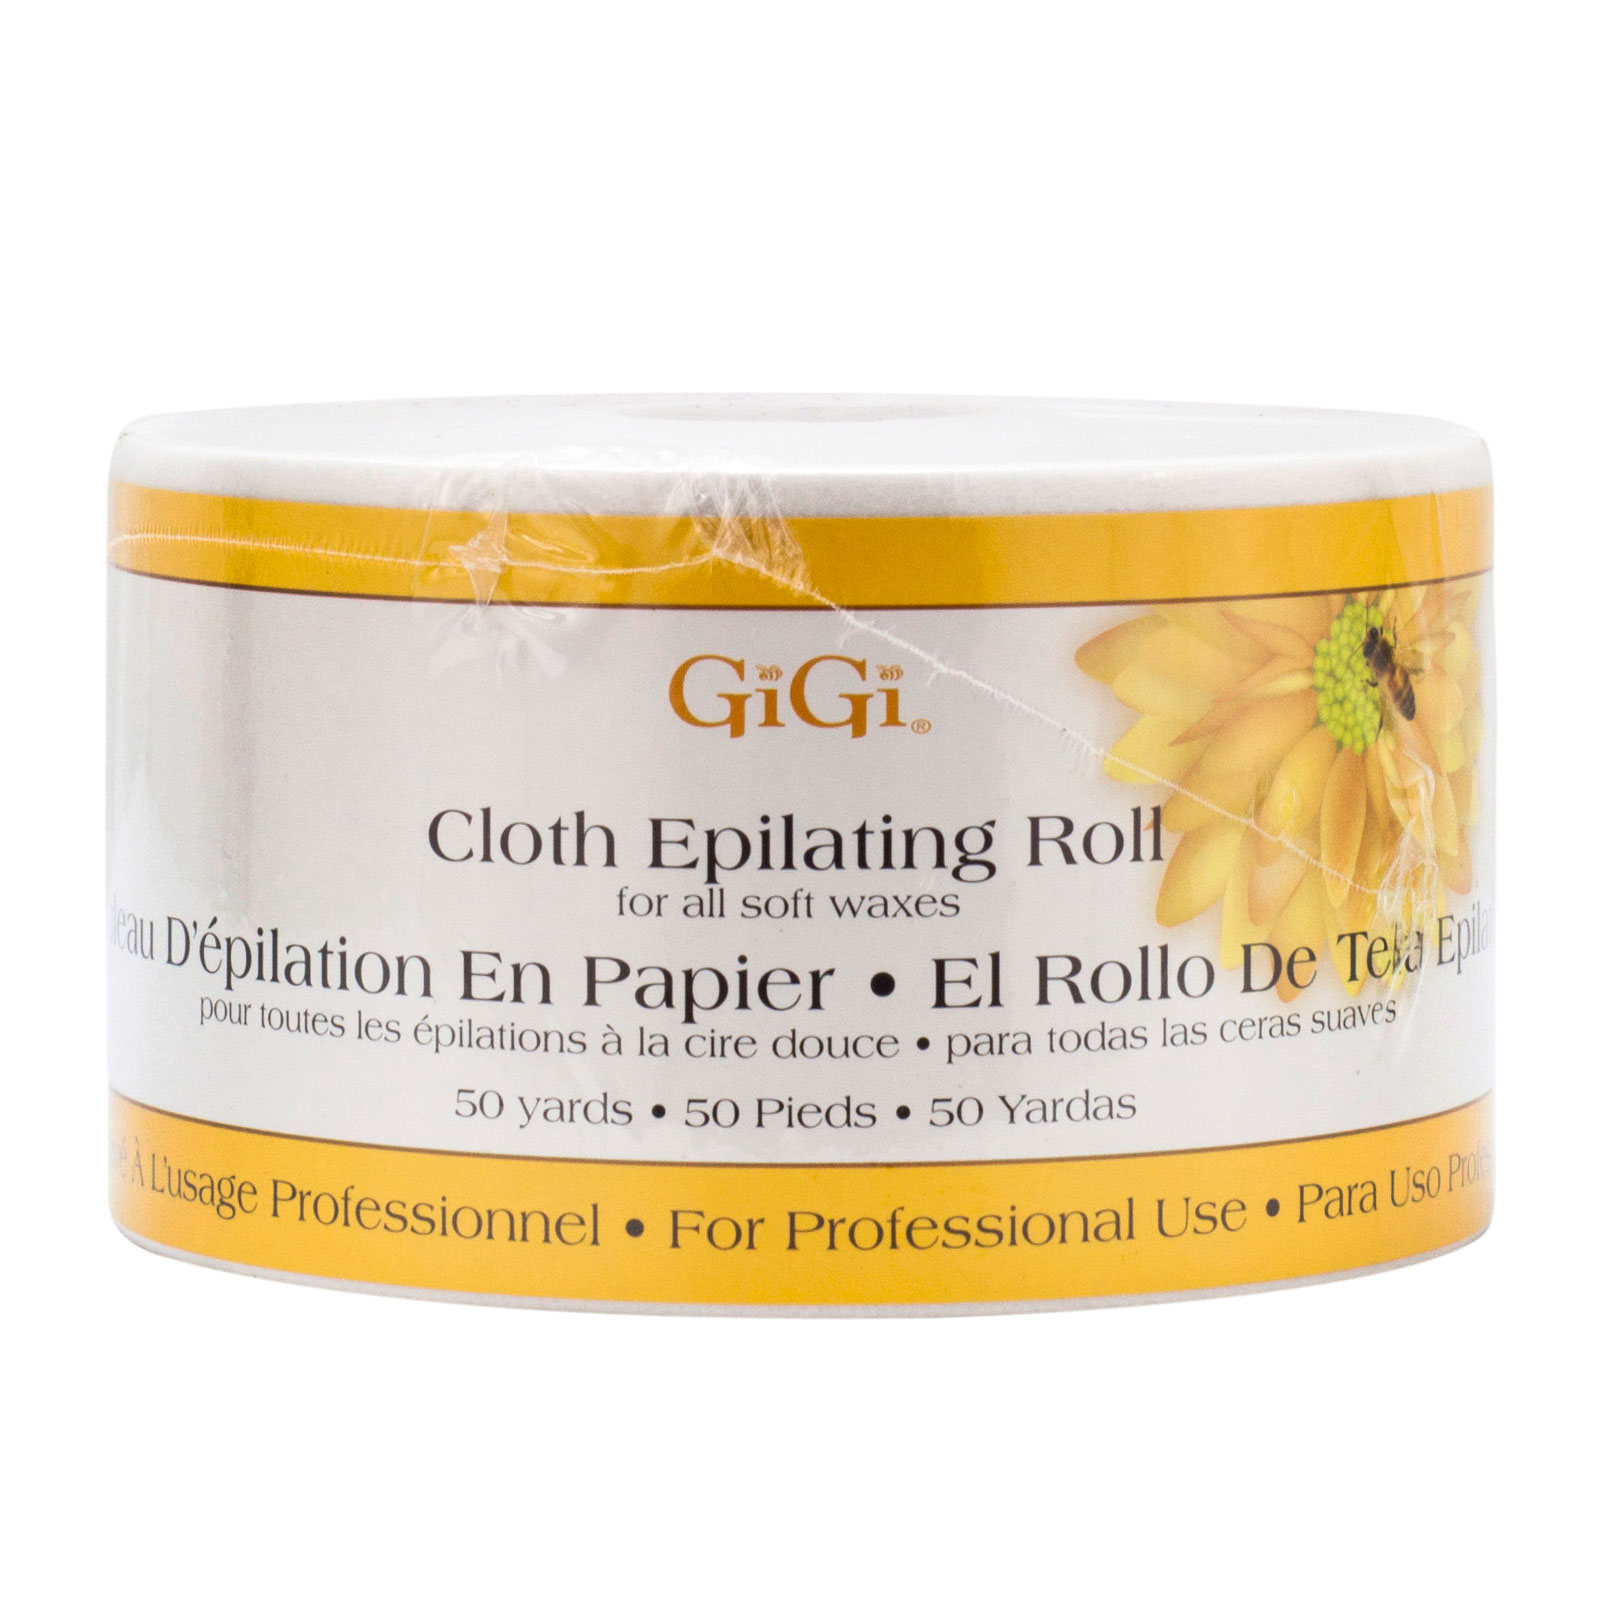 Gigi Paper Strips Epilating Waxing Roll Cloth, 525